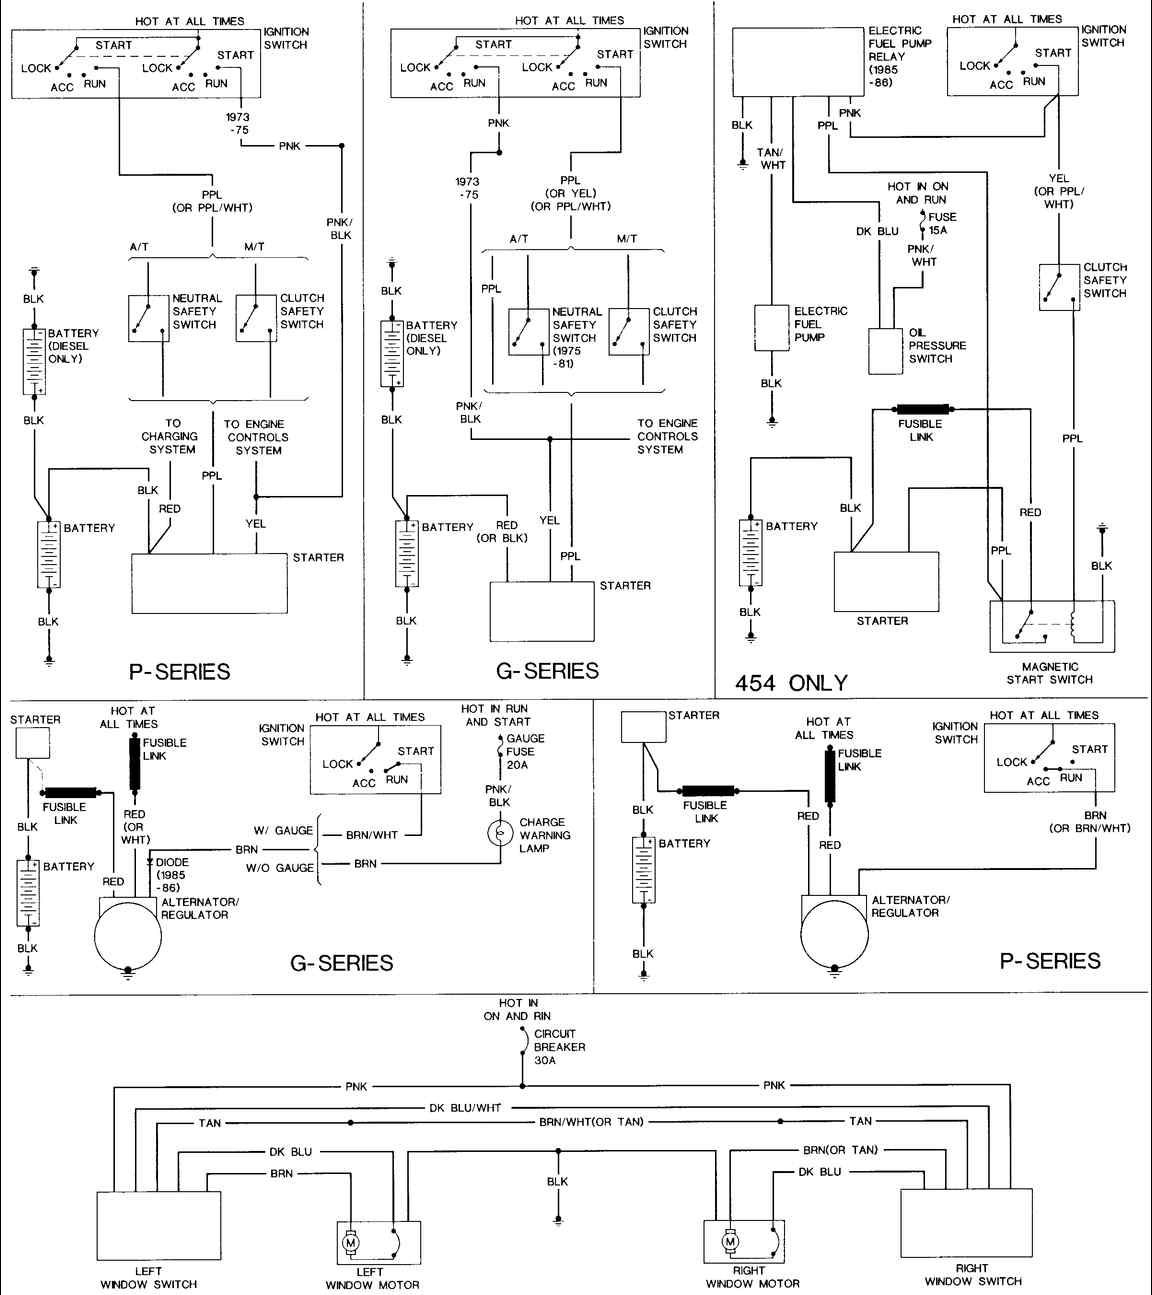 0c73623a181dc376dbb4777e2029d285 85 chevy truck wiring diagram 85 chevy van the steering column 85 chevy truck wiring diagram at gsmx.co